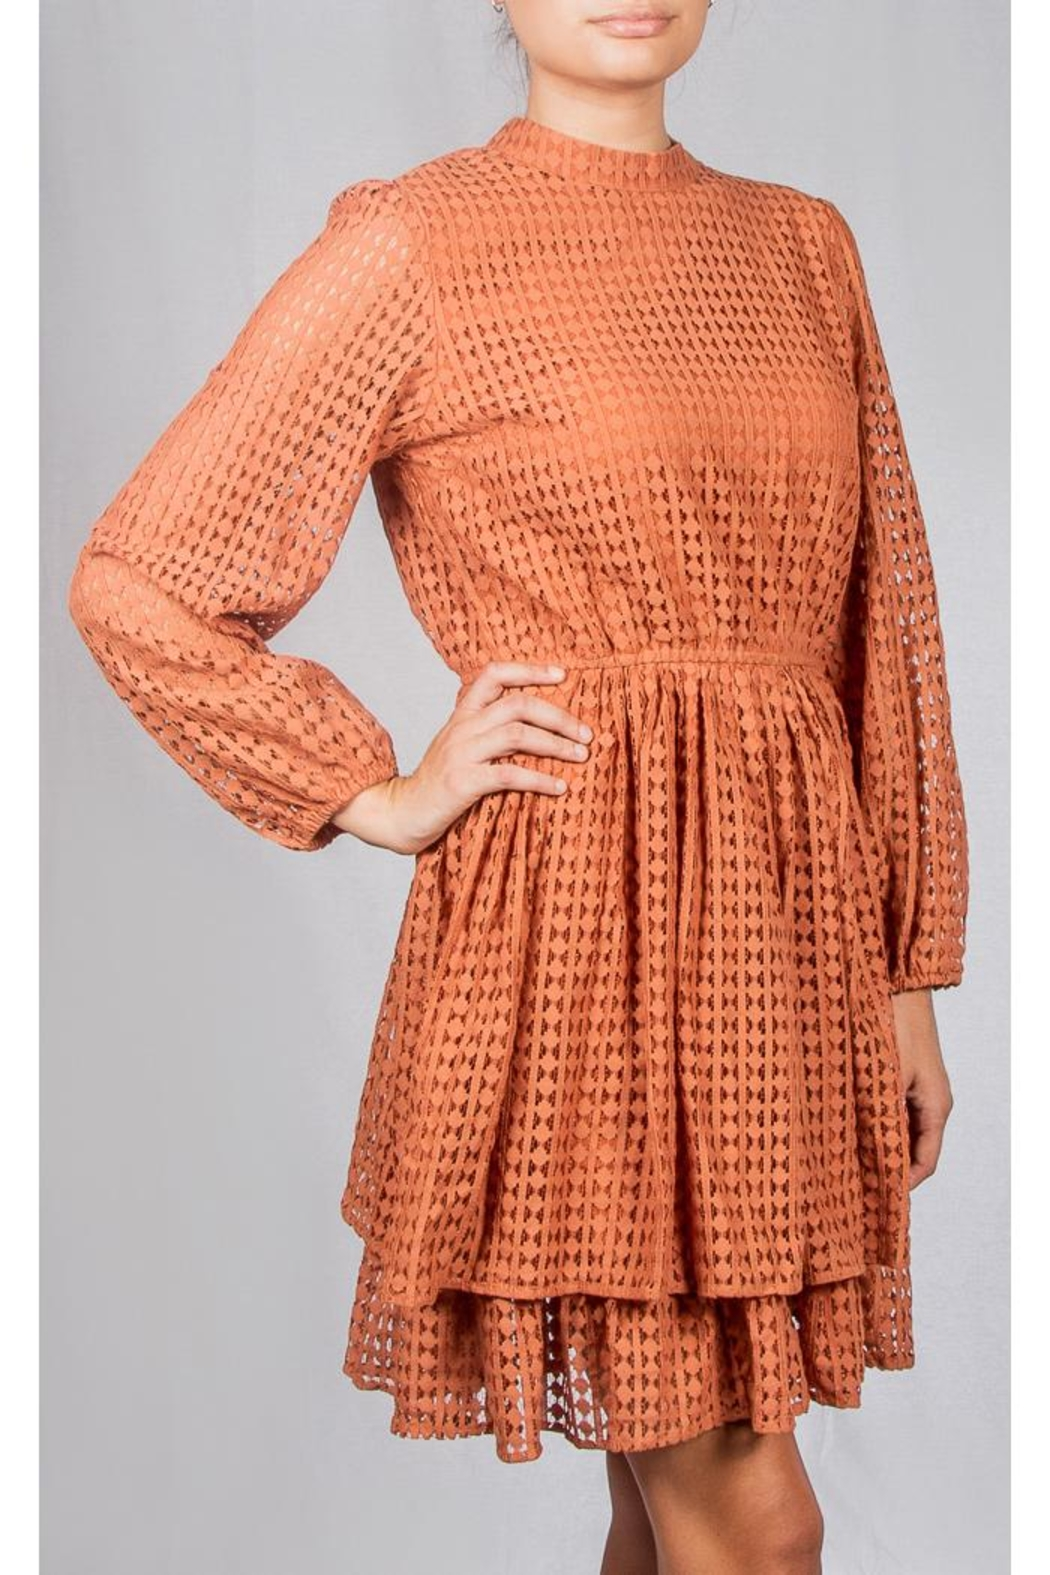 Mustard Seed Vintage Lace Dress - Front Full Image